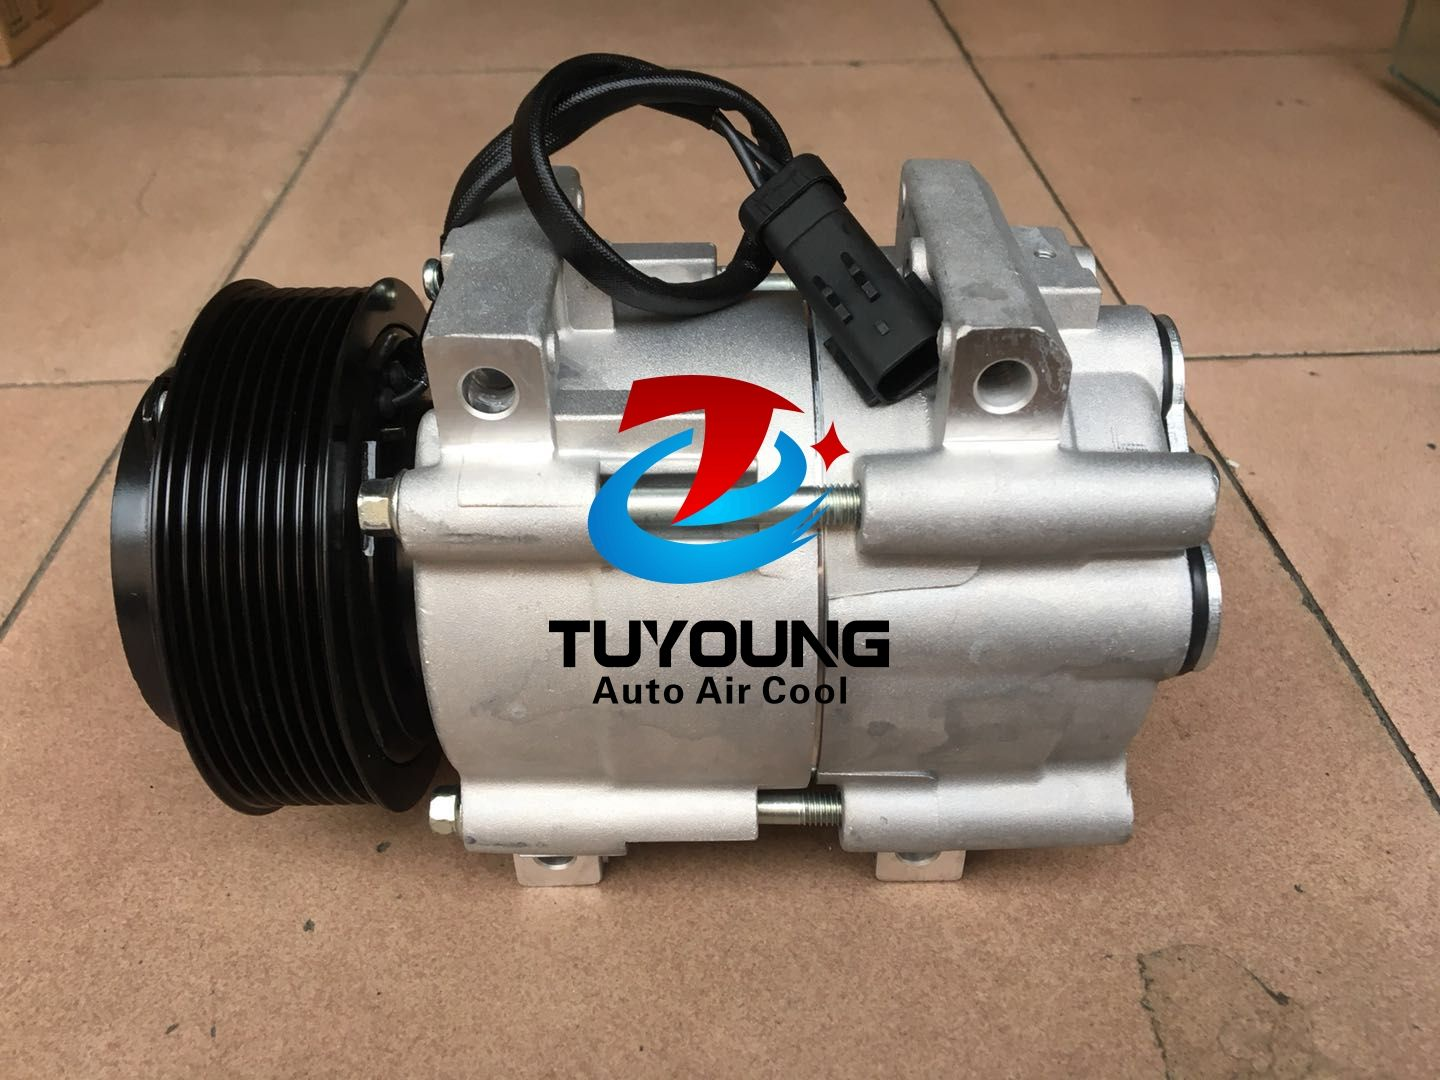 HYACDodge Dodge vehicle air conditioning compressor , car